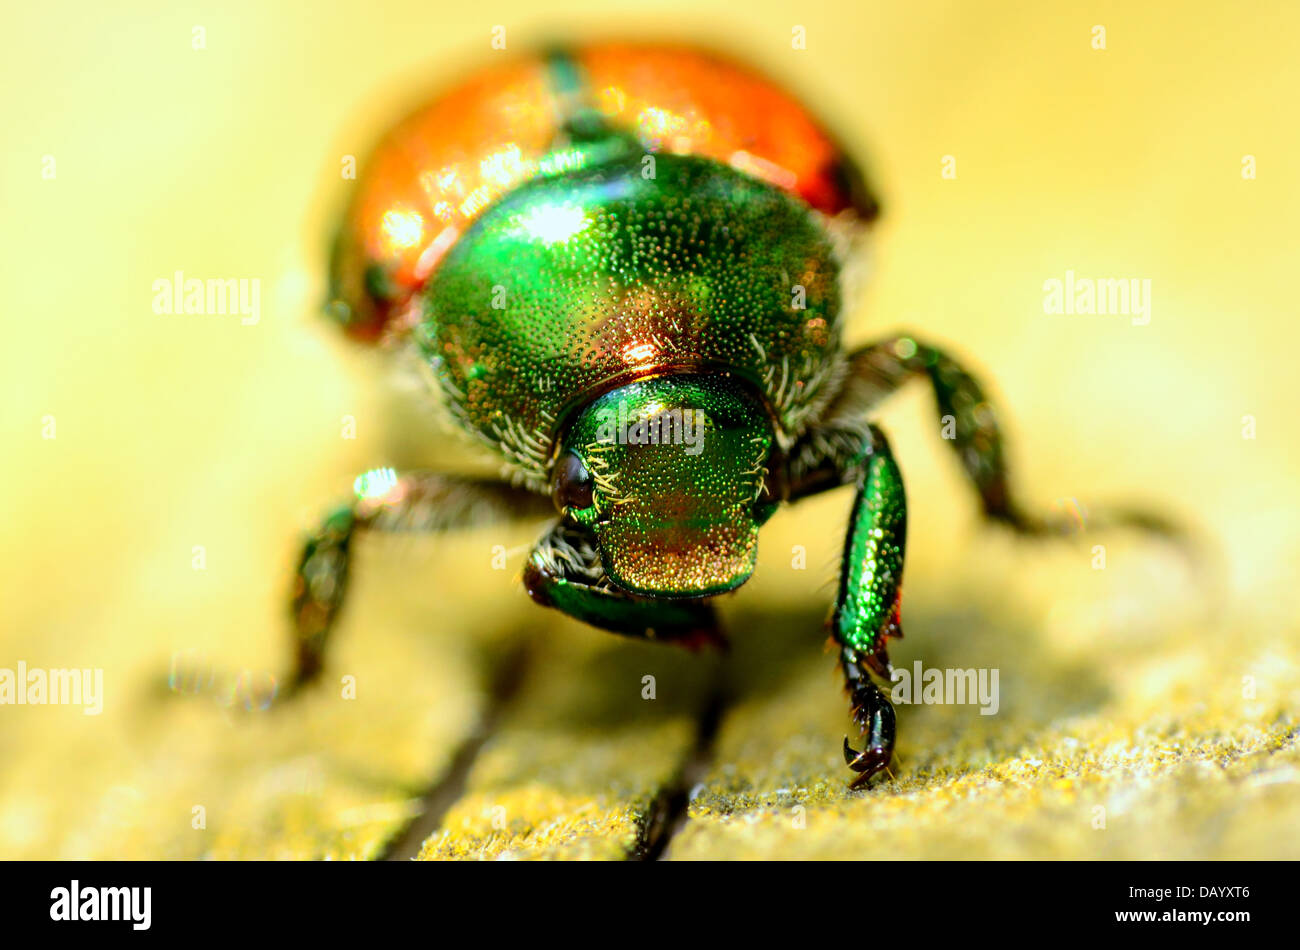 A Japanese Beetle perched on a wooden plank. - Stock Image